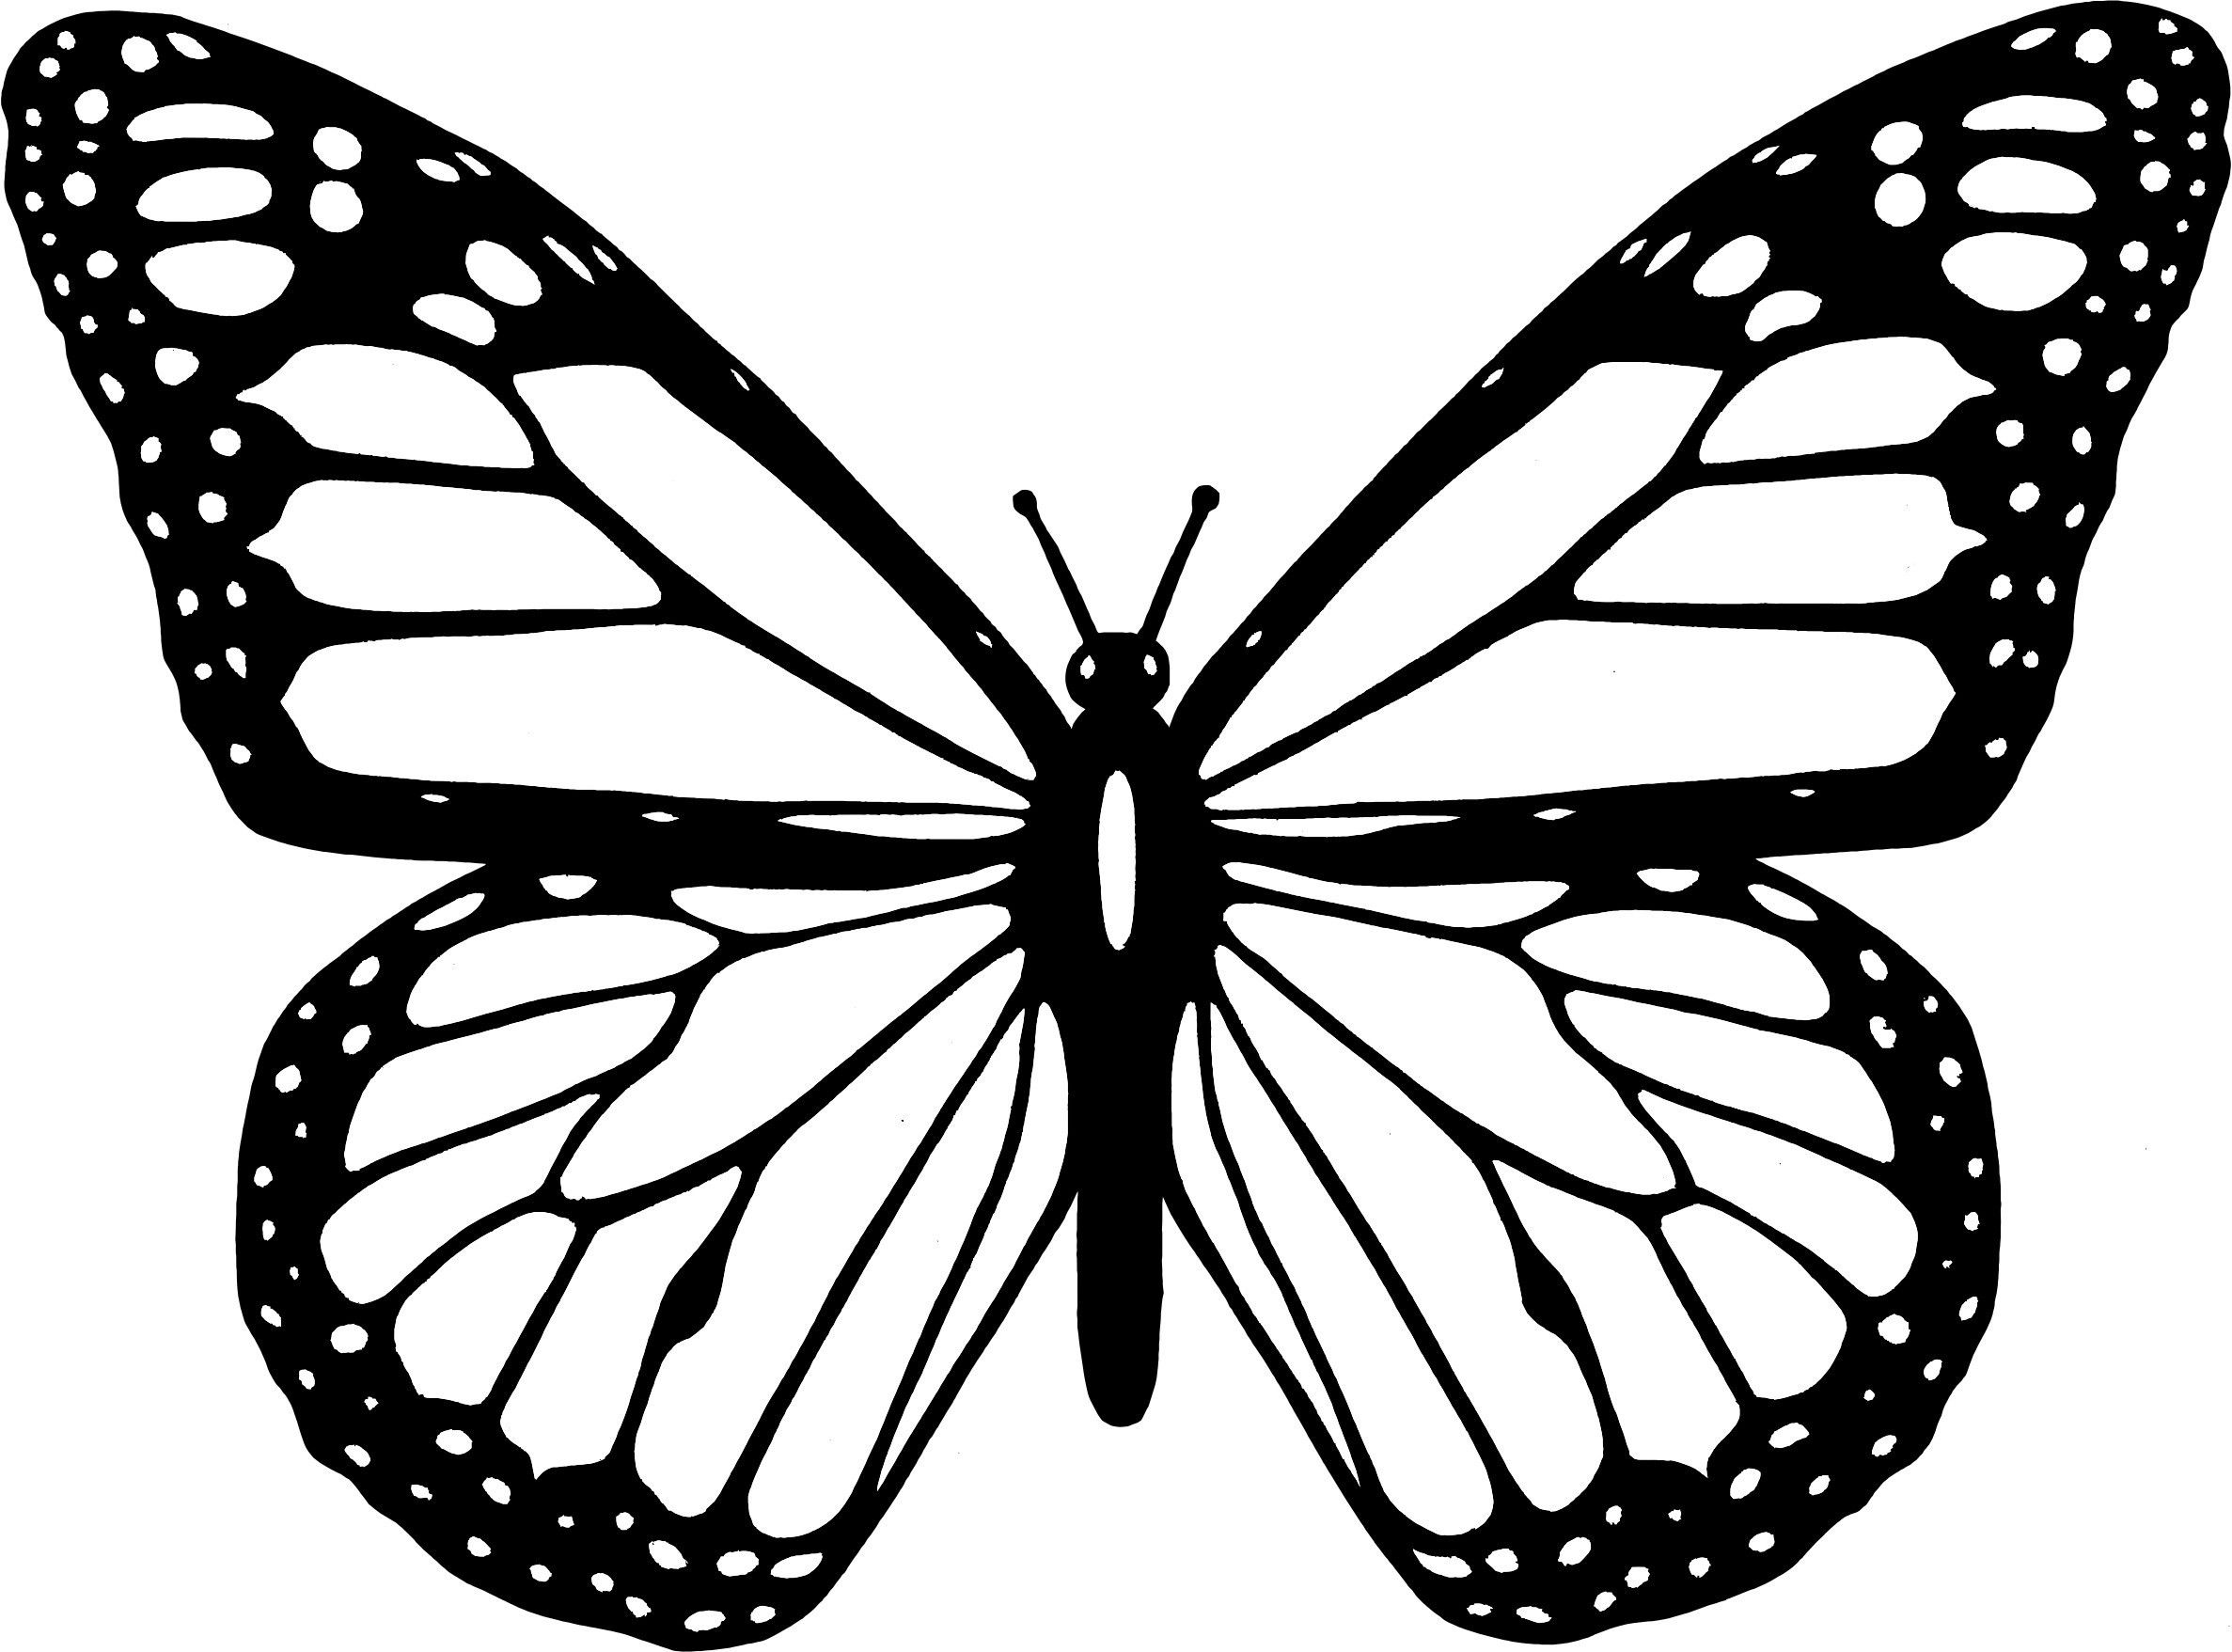 47+ Monarch butterfly clipart black and white ideas in 2021